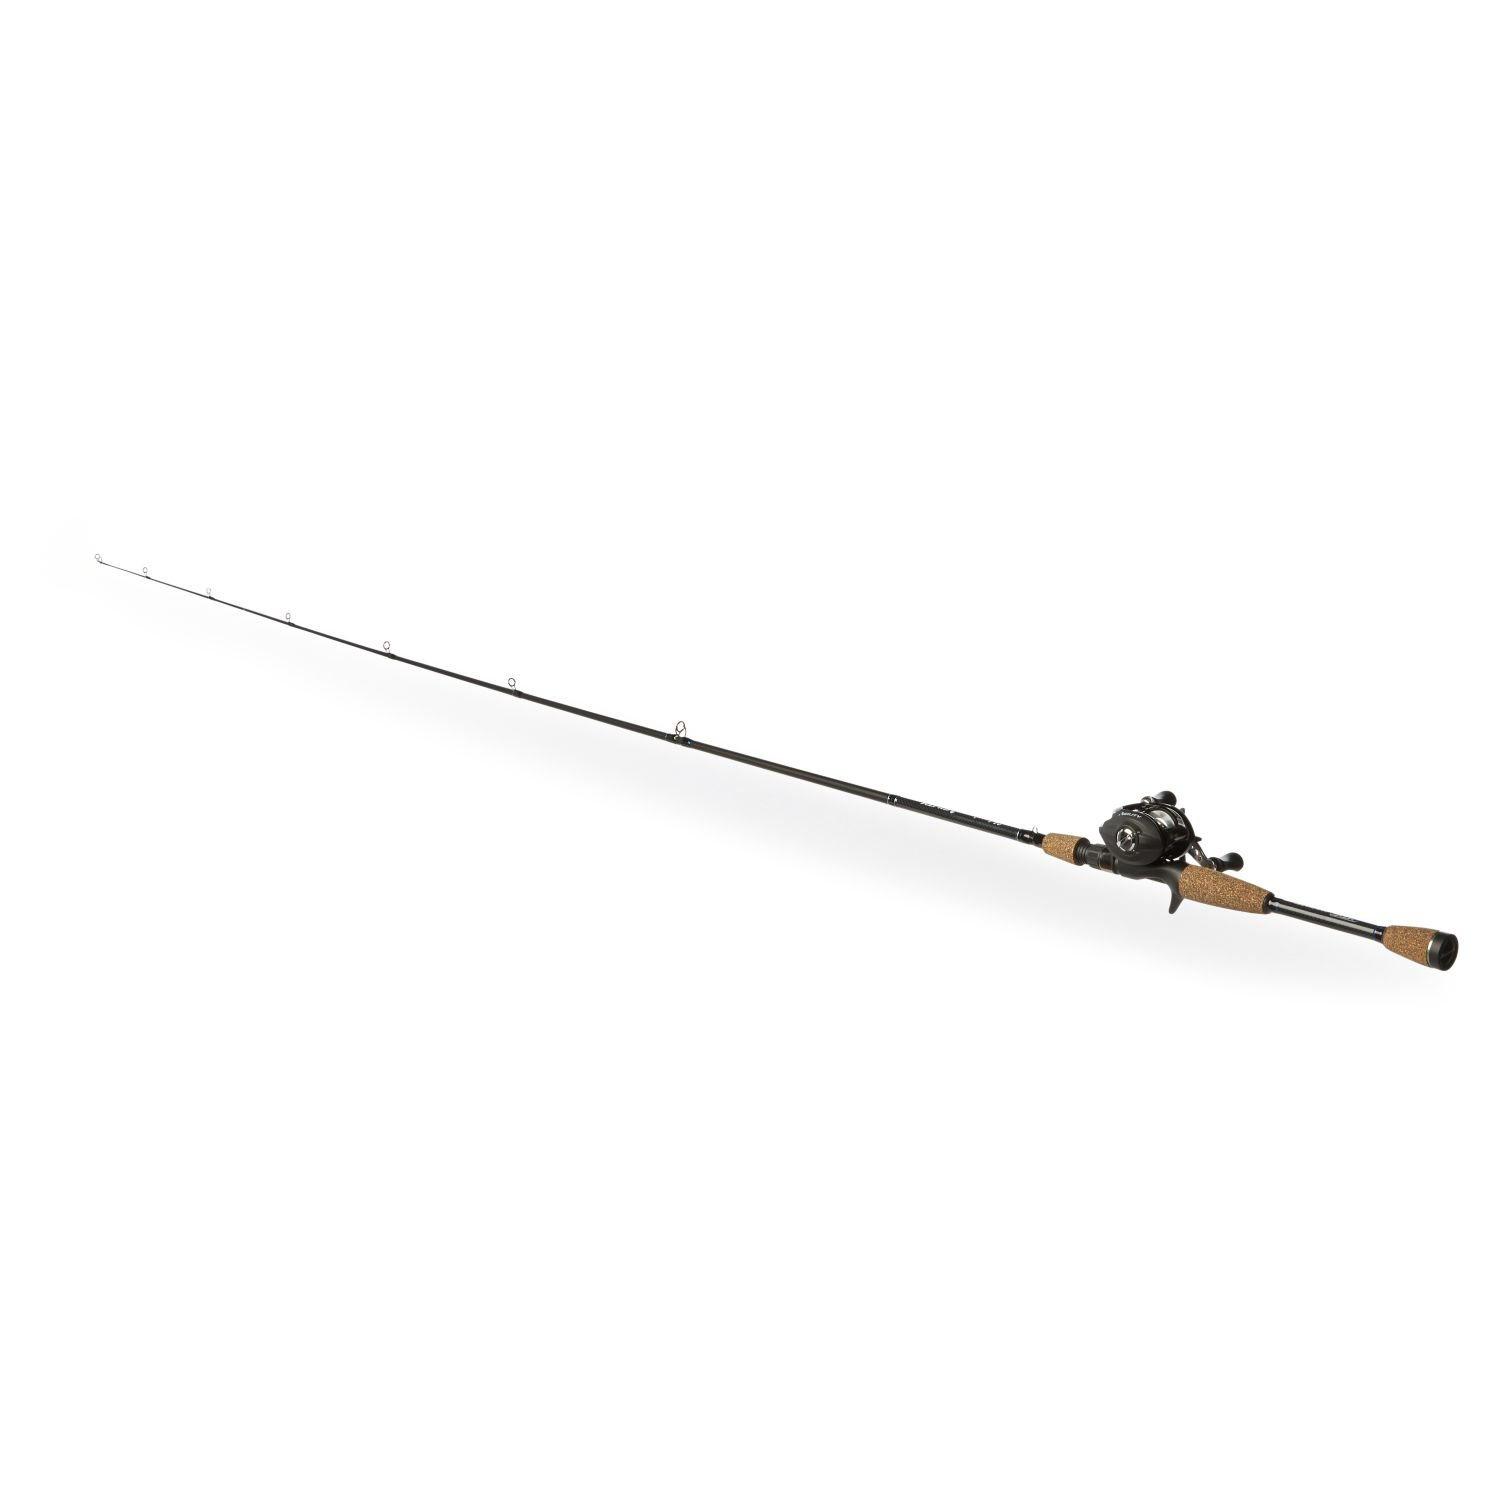 Shakespeare AGLPCBO Agility Low Profile Baitcast Rod and Reel Combo, 6.6 Feet, Medium Power by Shakespeare